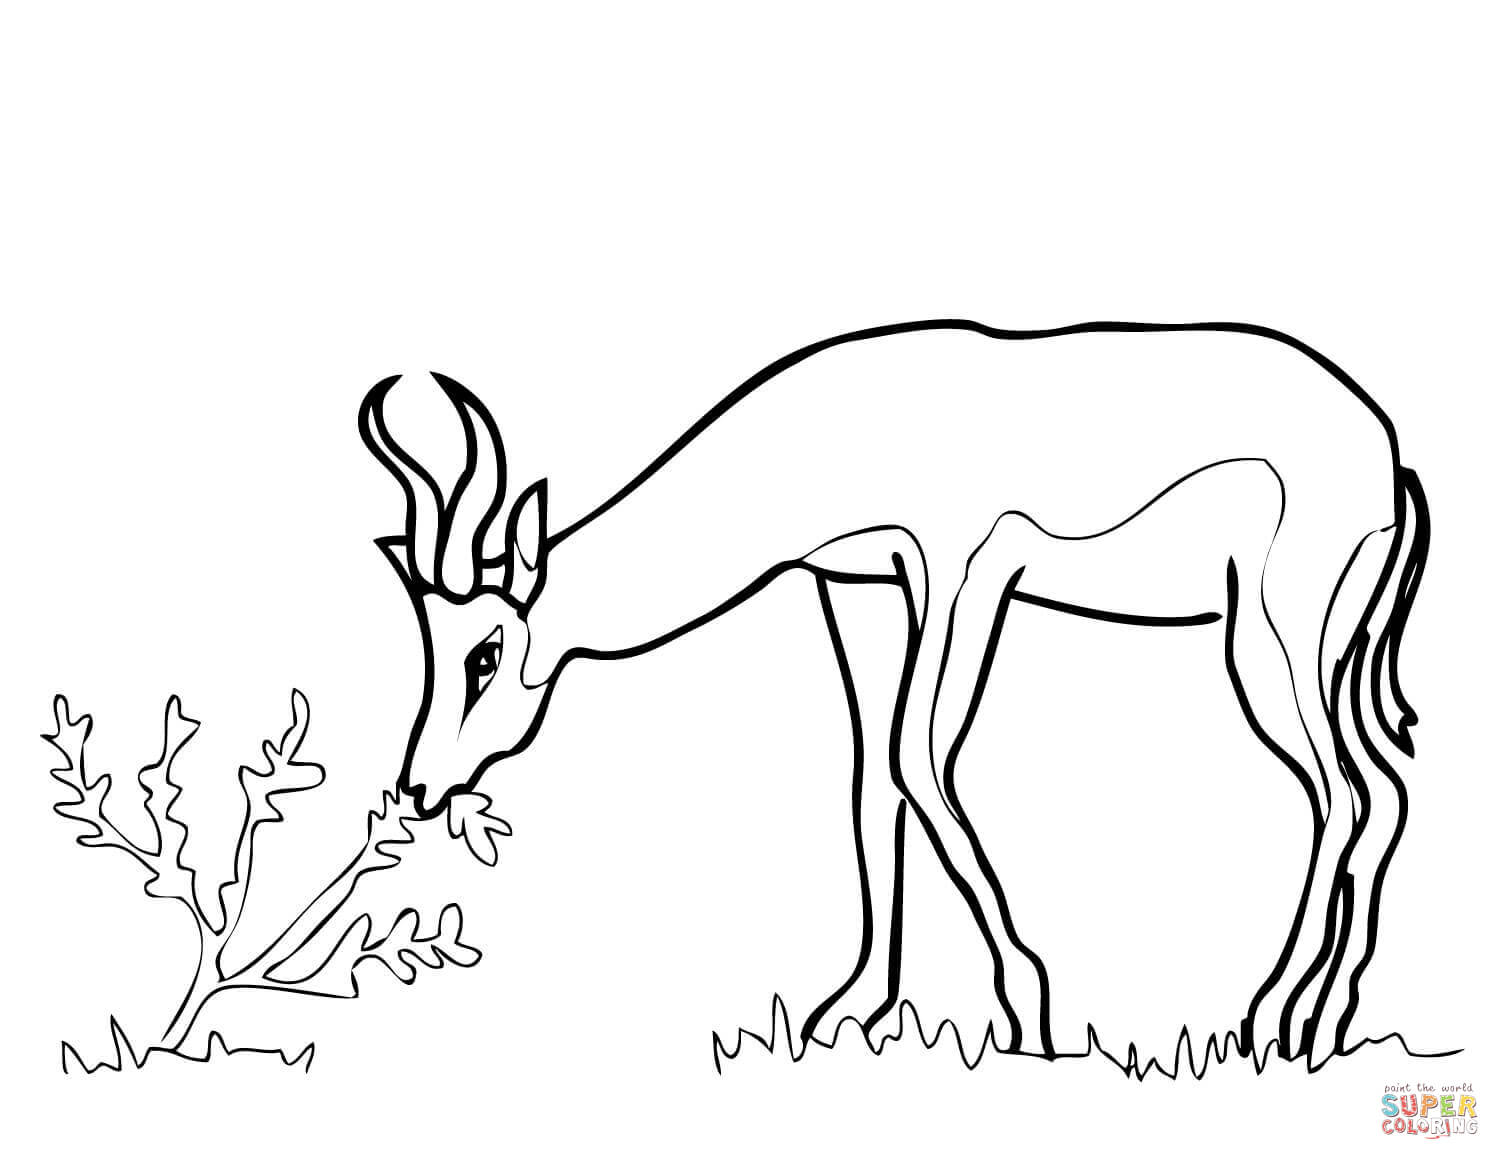 Springbok From South Africa Coloring Page